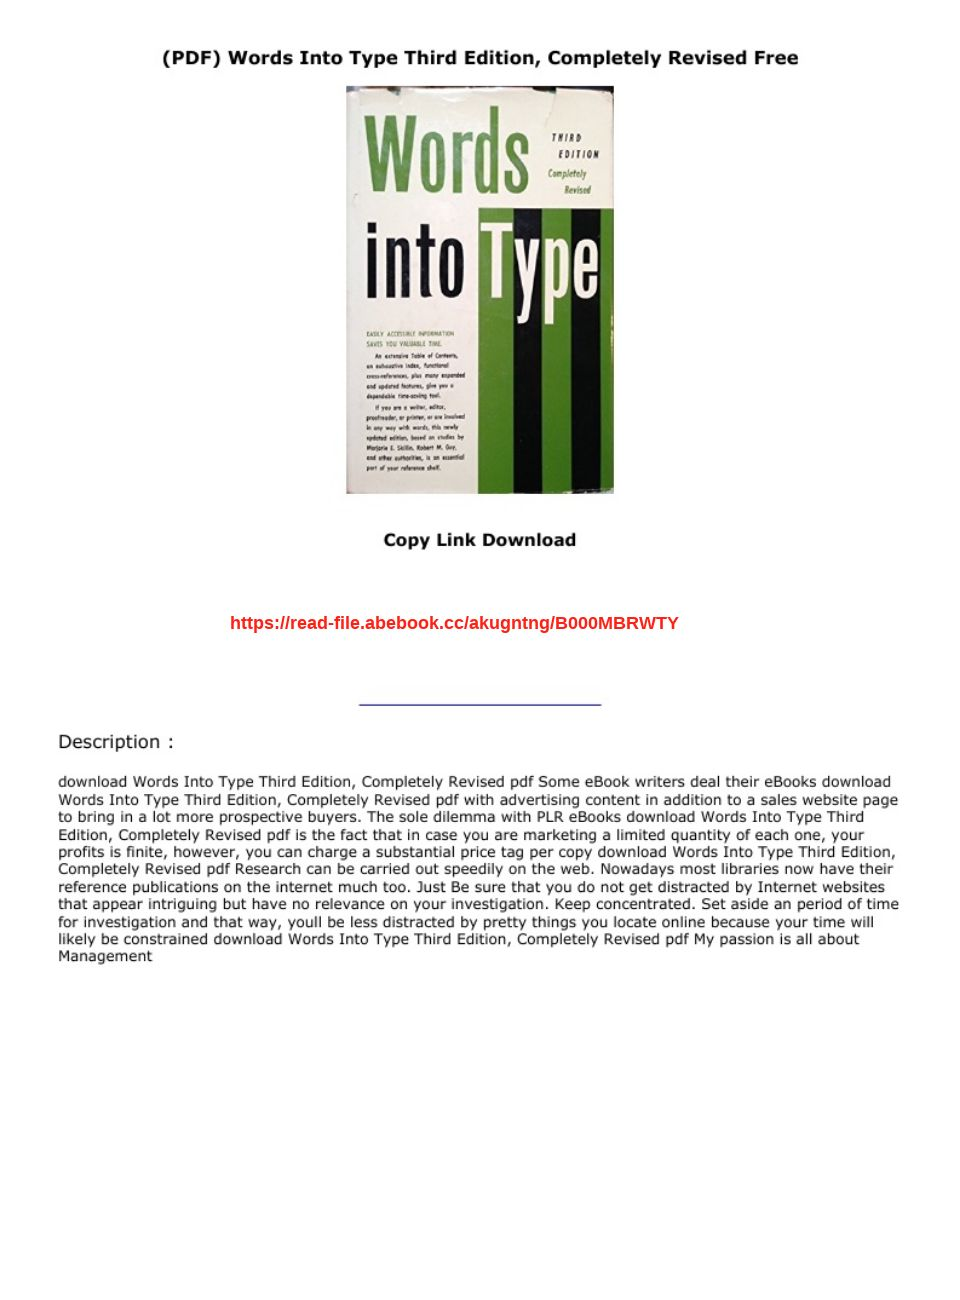 (PDF) Words Into Type Third Edition, Completely Revised Free